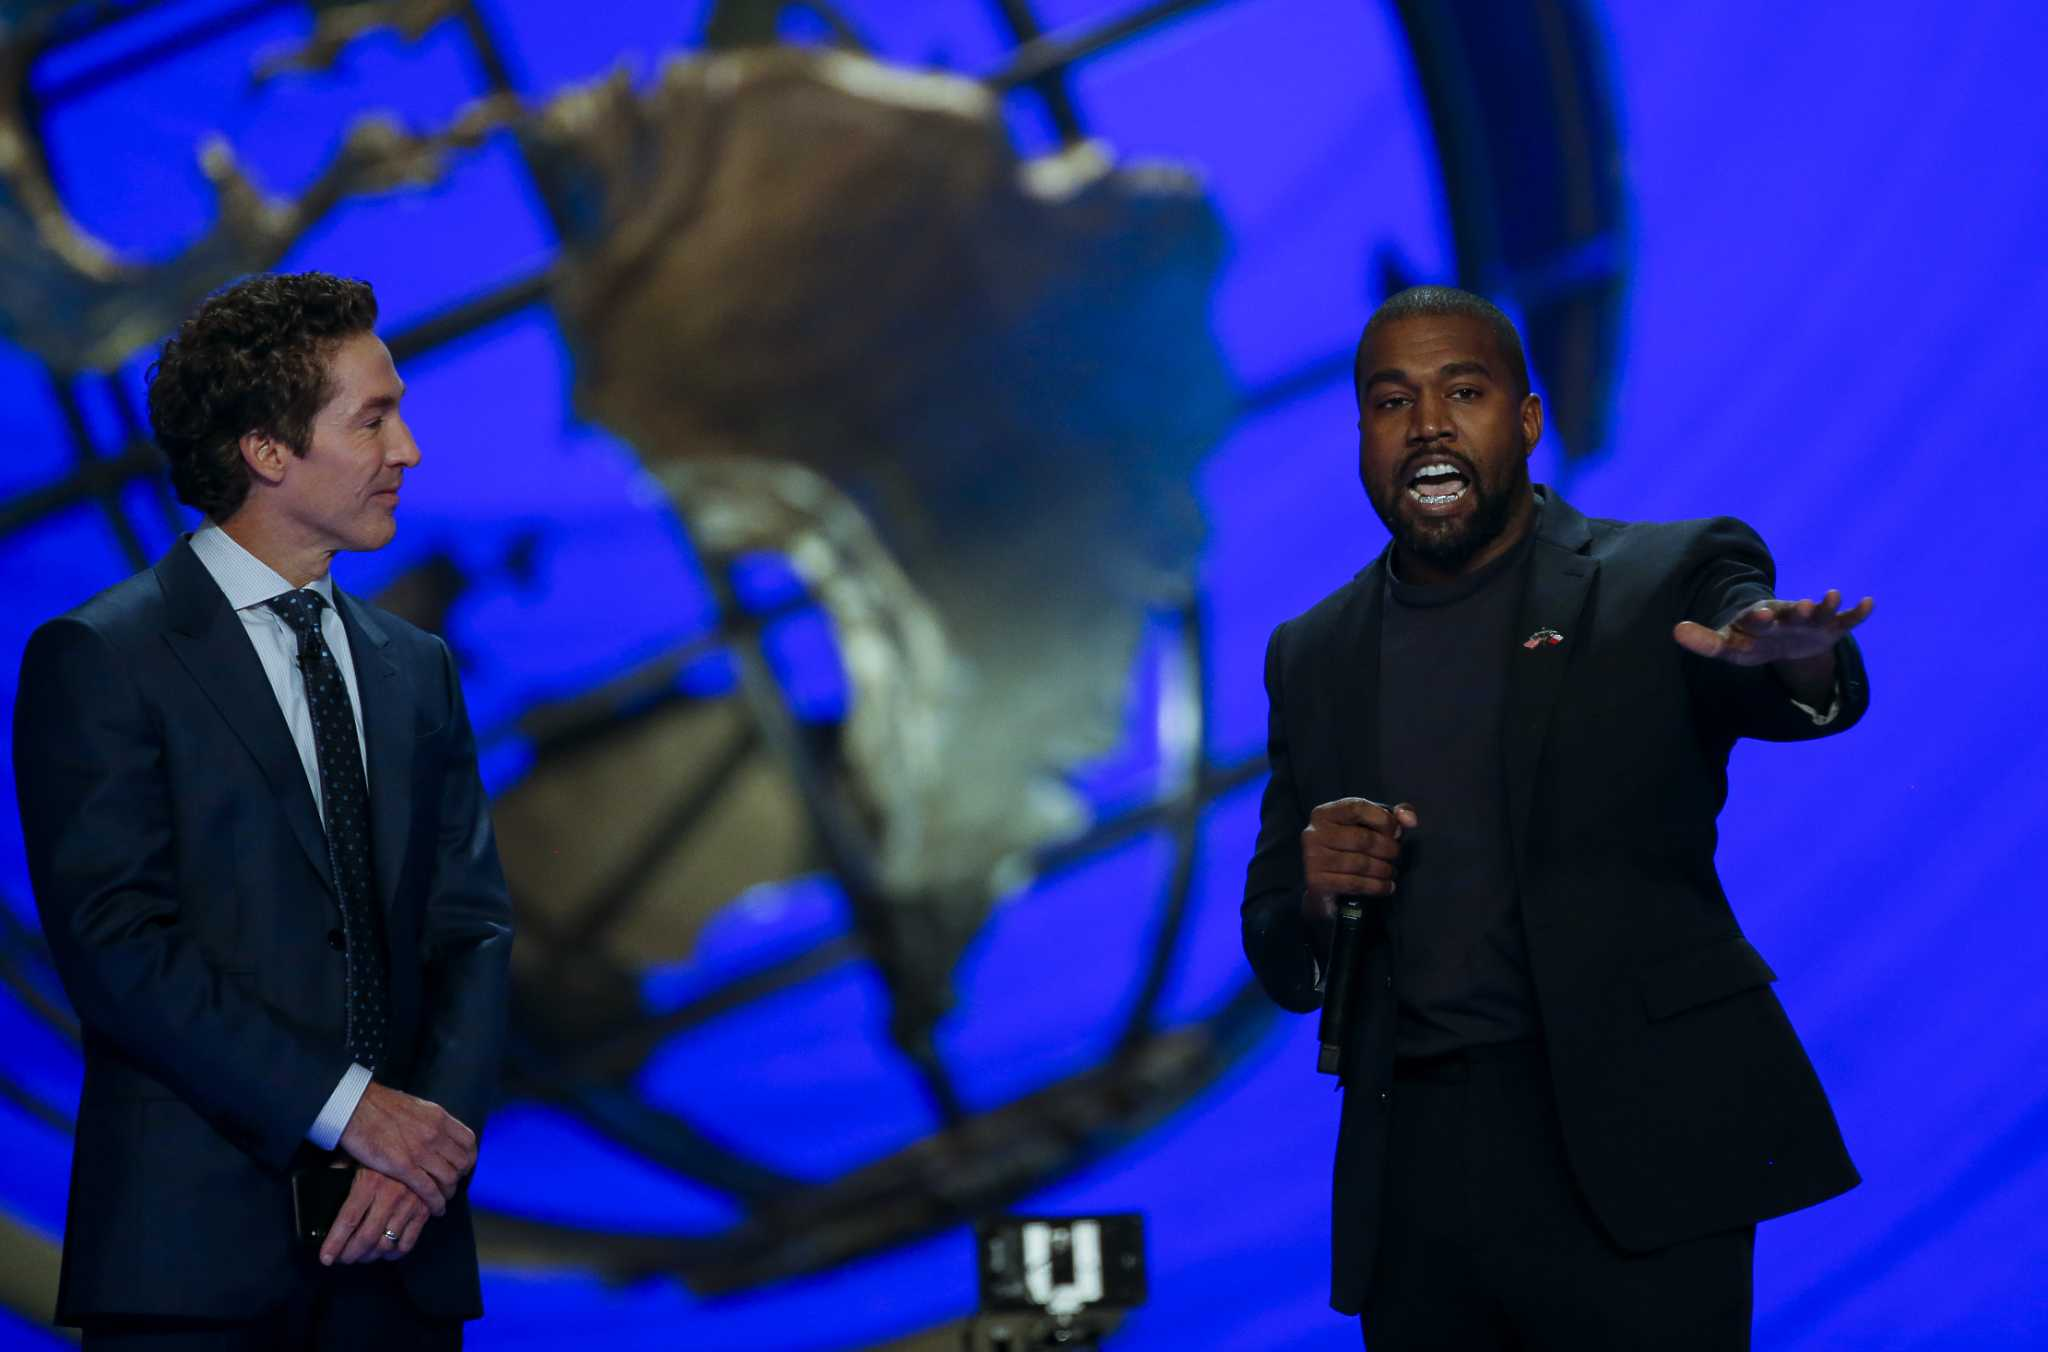 Kanye West and Joel Osteen to reunite for special event at Yankee Stadium